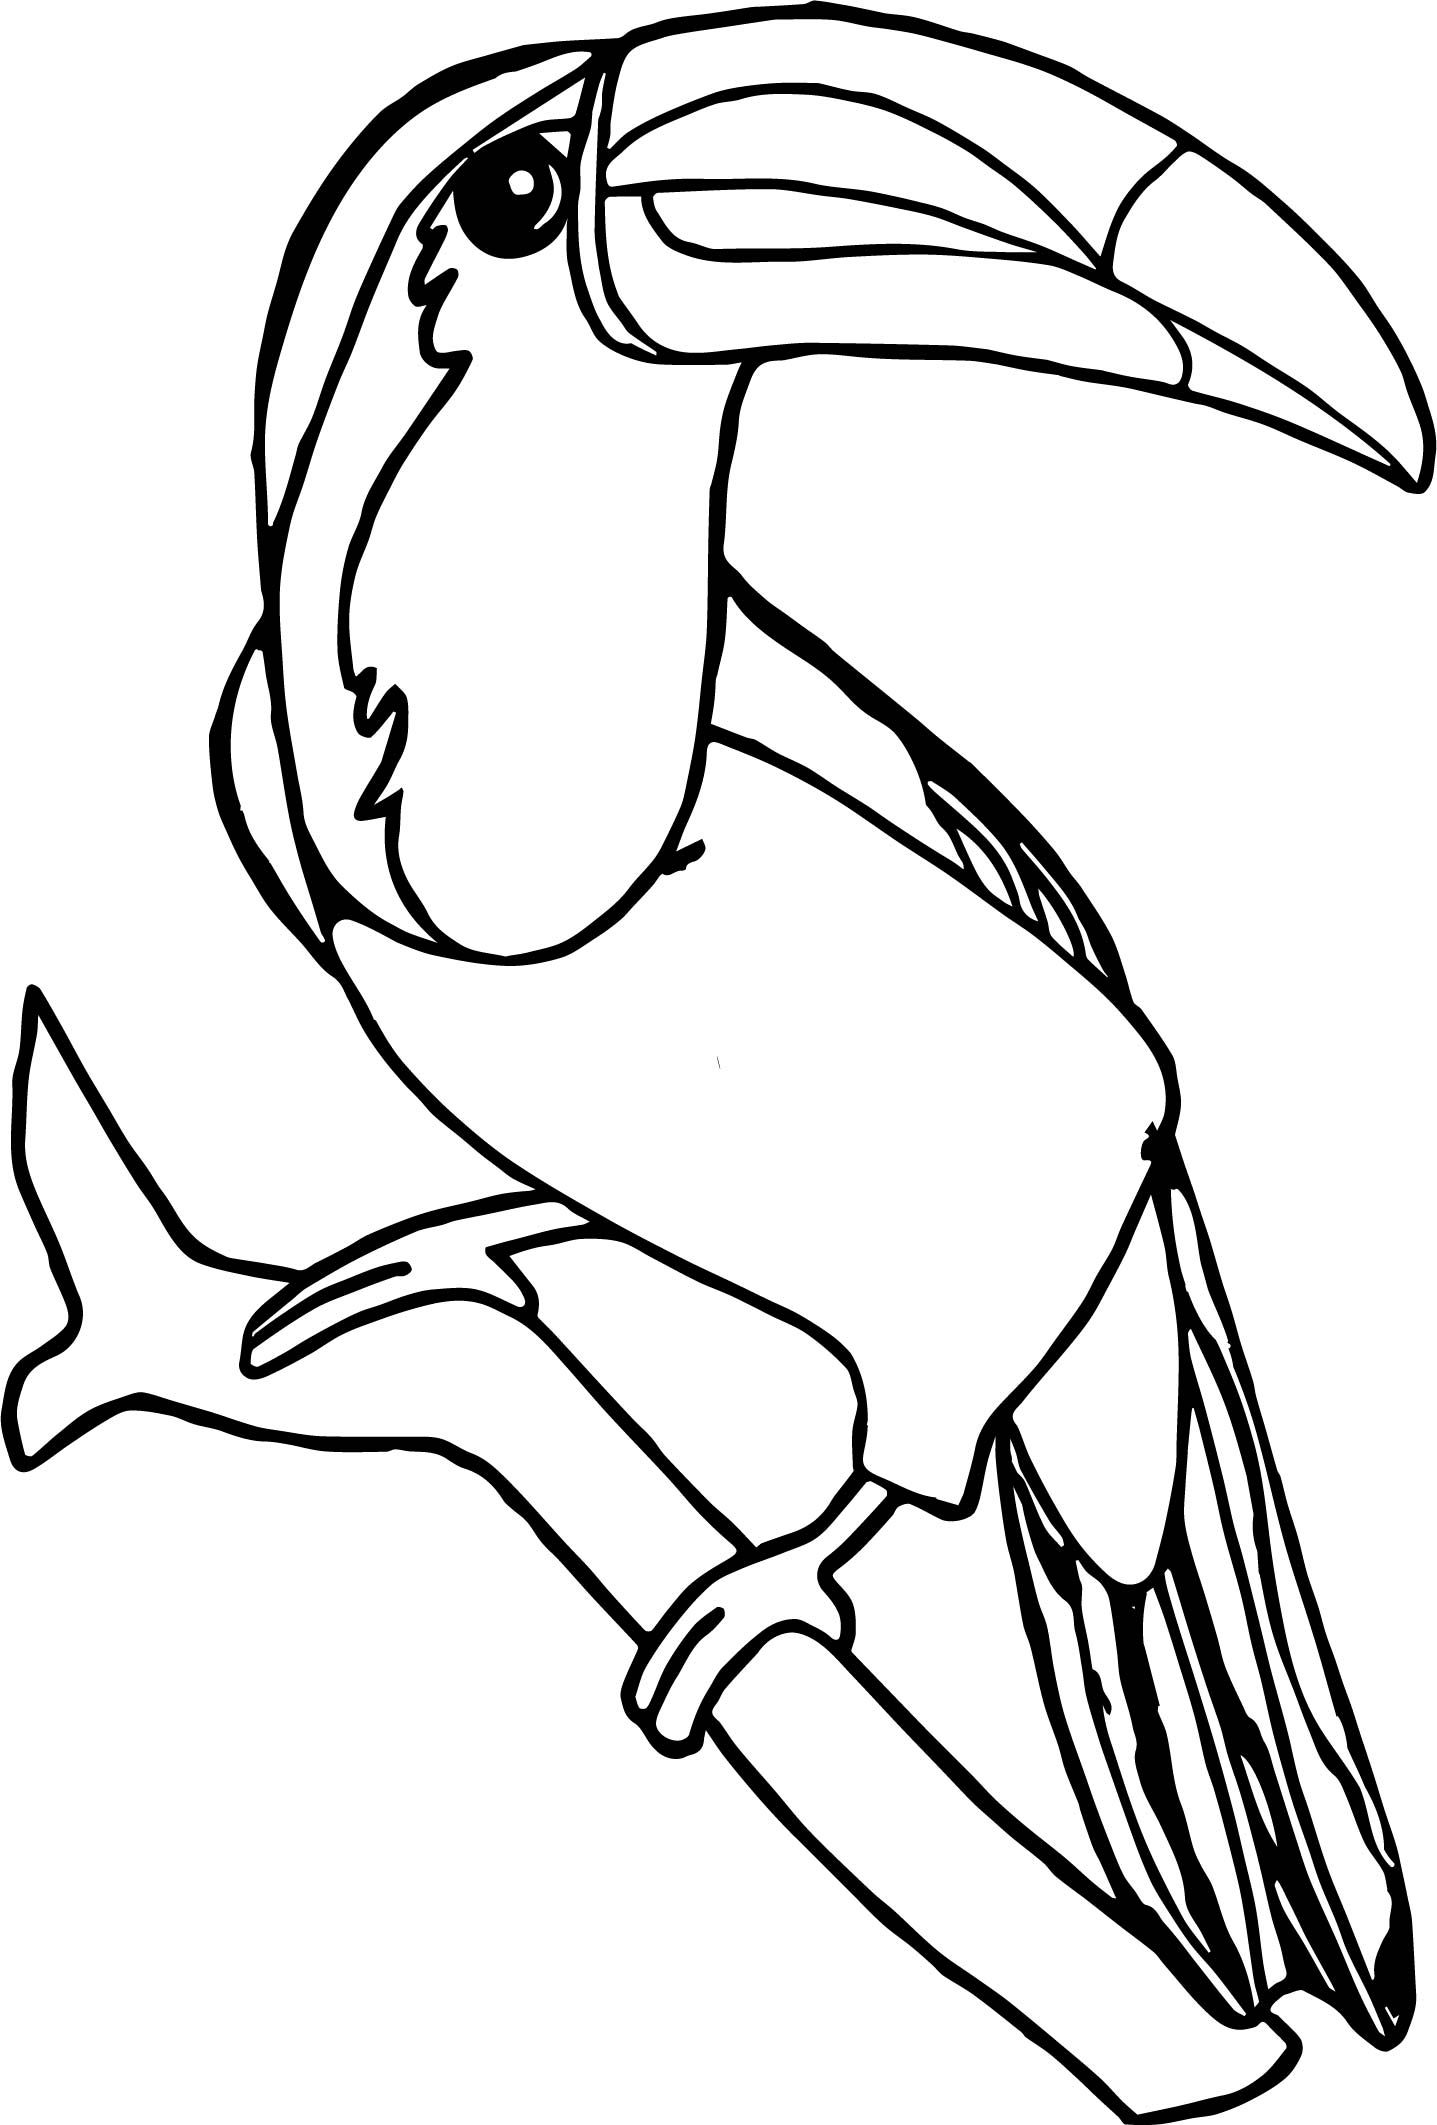 Awesome Rainforest Toucan Bird Coloring Page